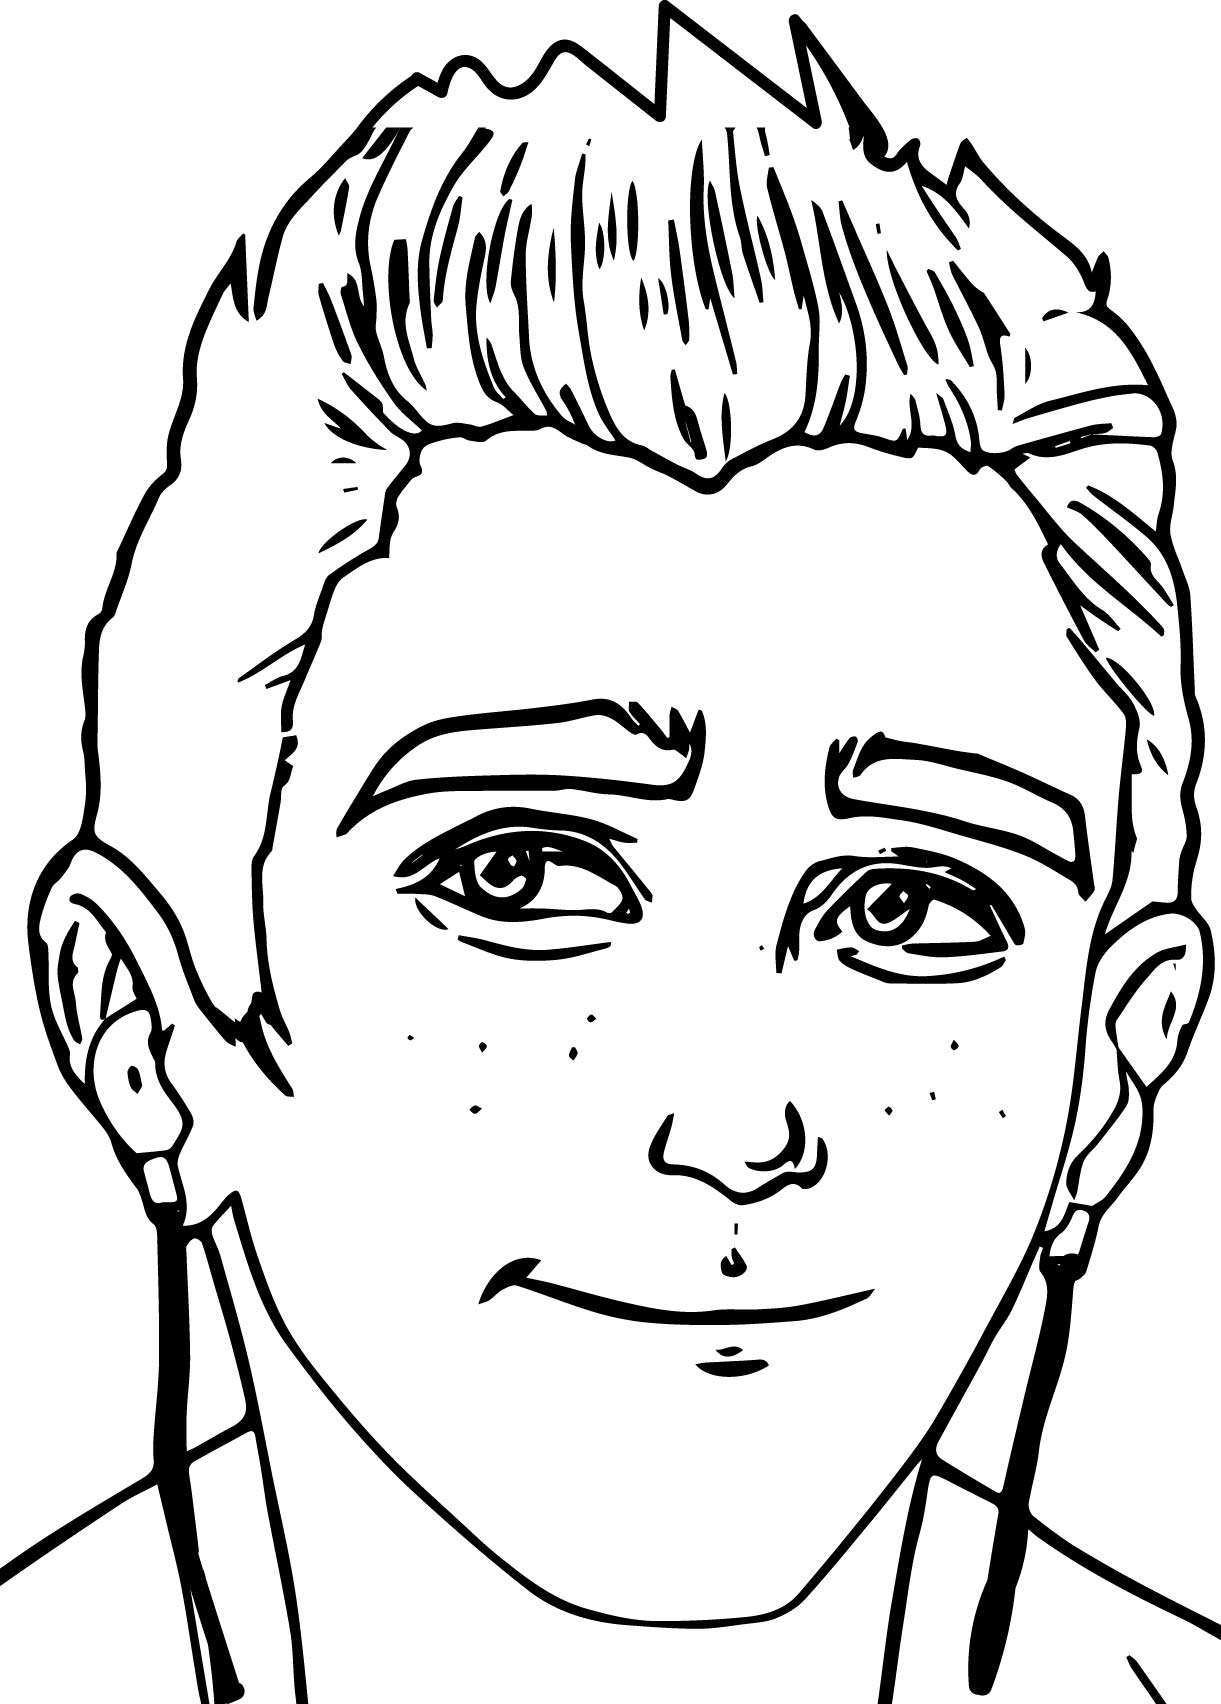 Coloring Pages Archie Coloring Pages archie article story large face coloring page wecoloringpage page